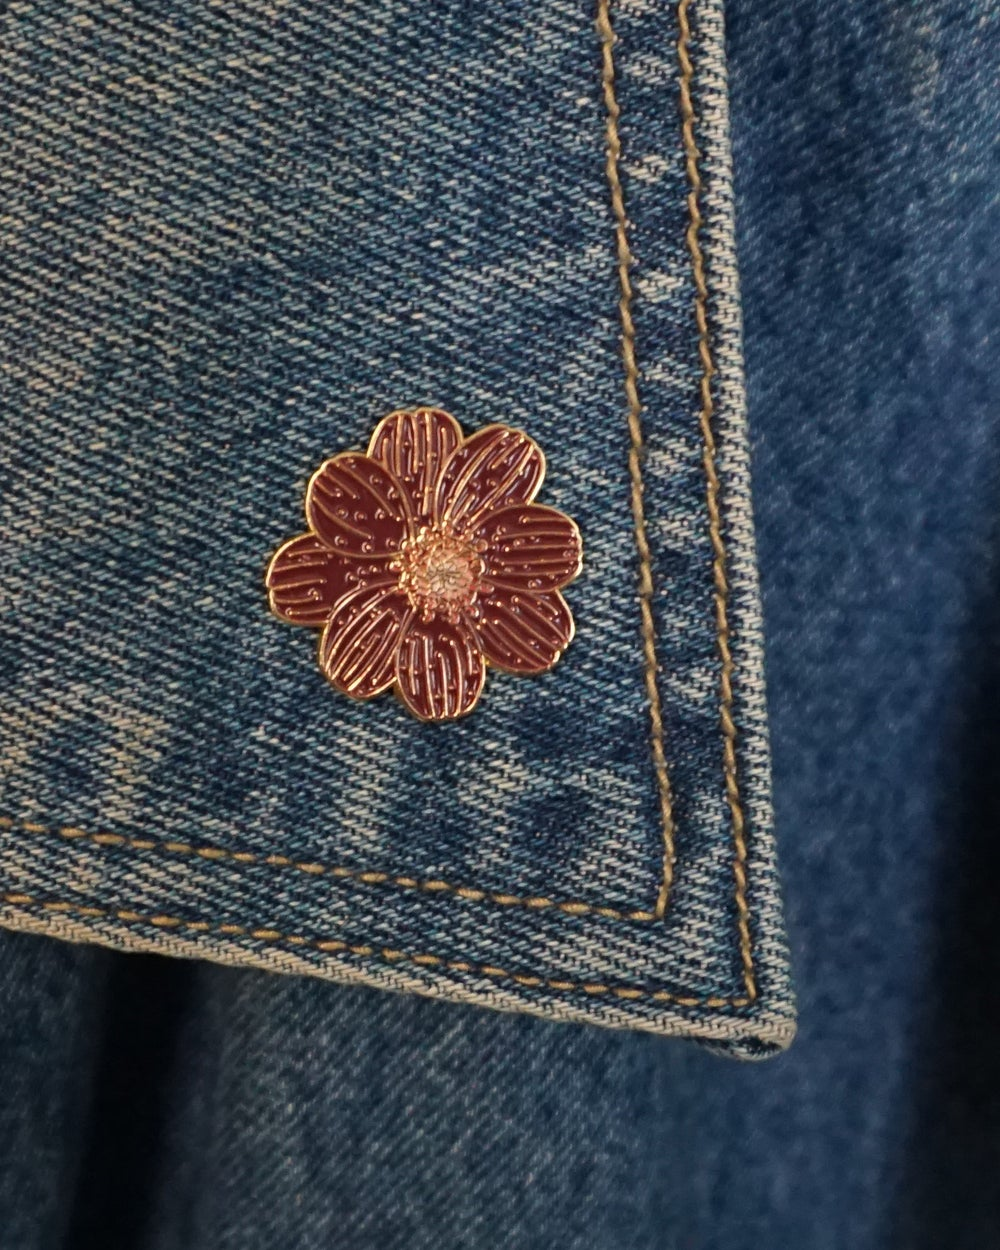 Image of chocolate cosmos flower pin.